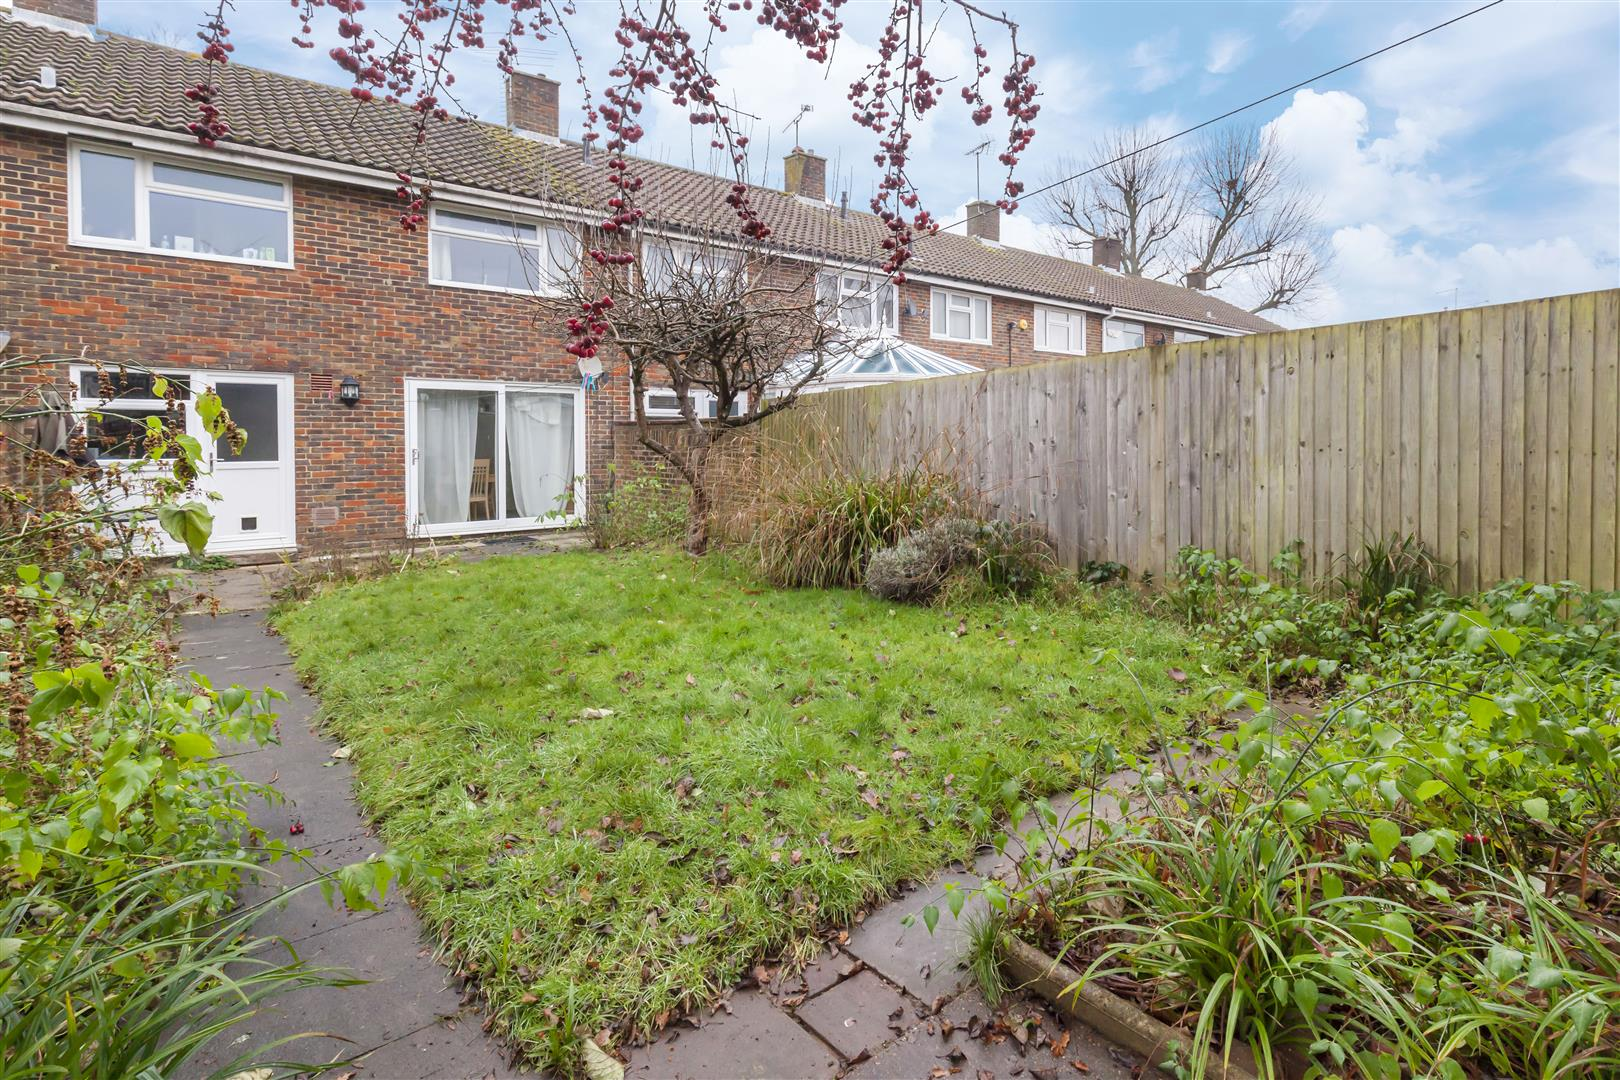 3 bed terraced-house for sale in Furnace Drive, Crawley 13